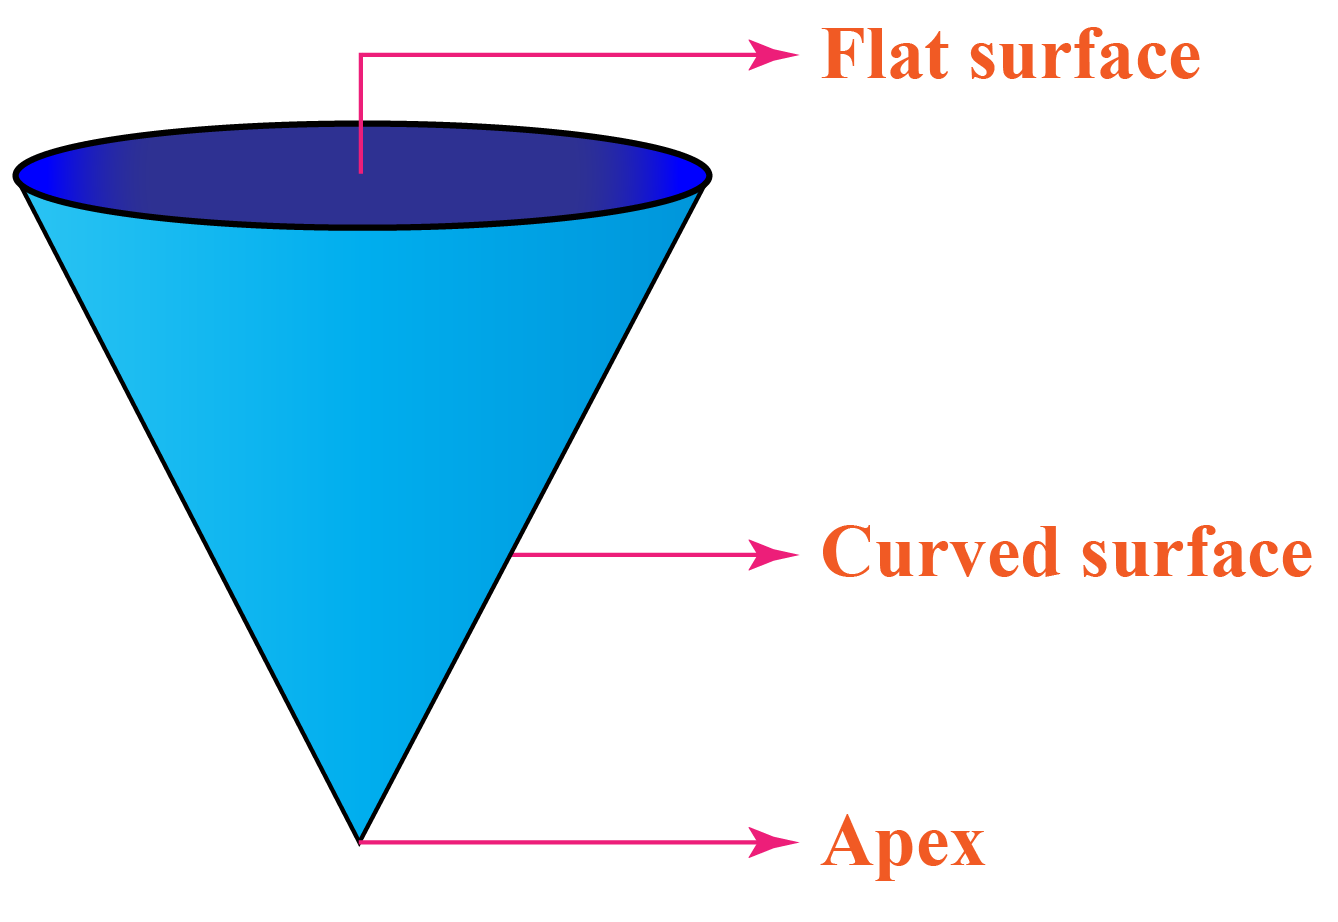 Cone with flat surface, apex, and curved surface marked on it.